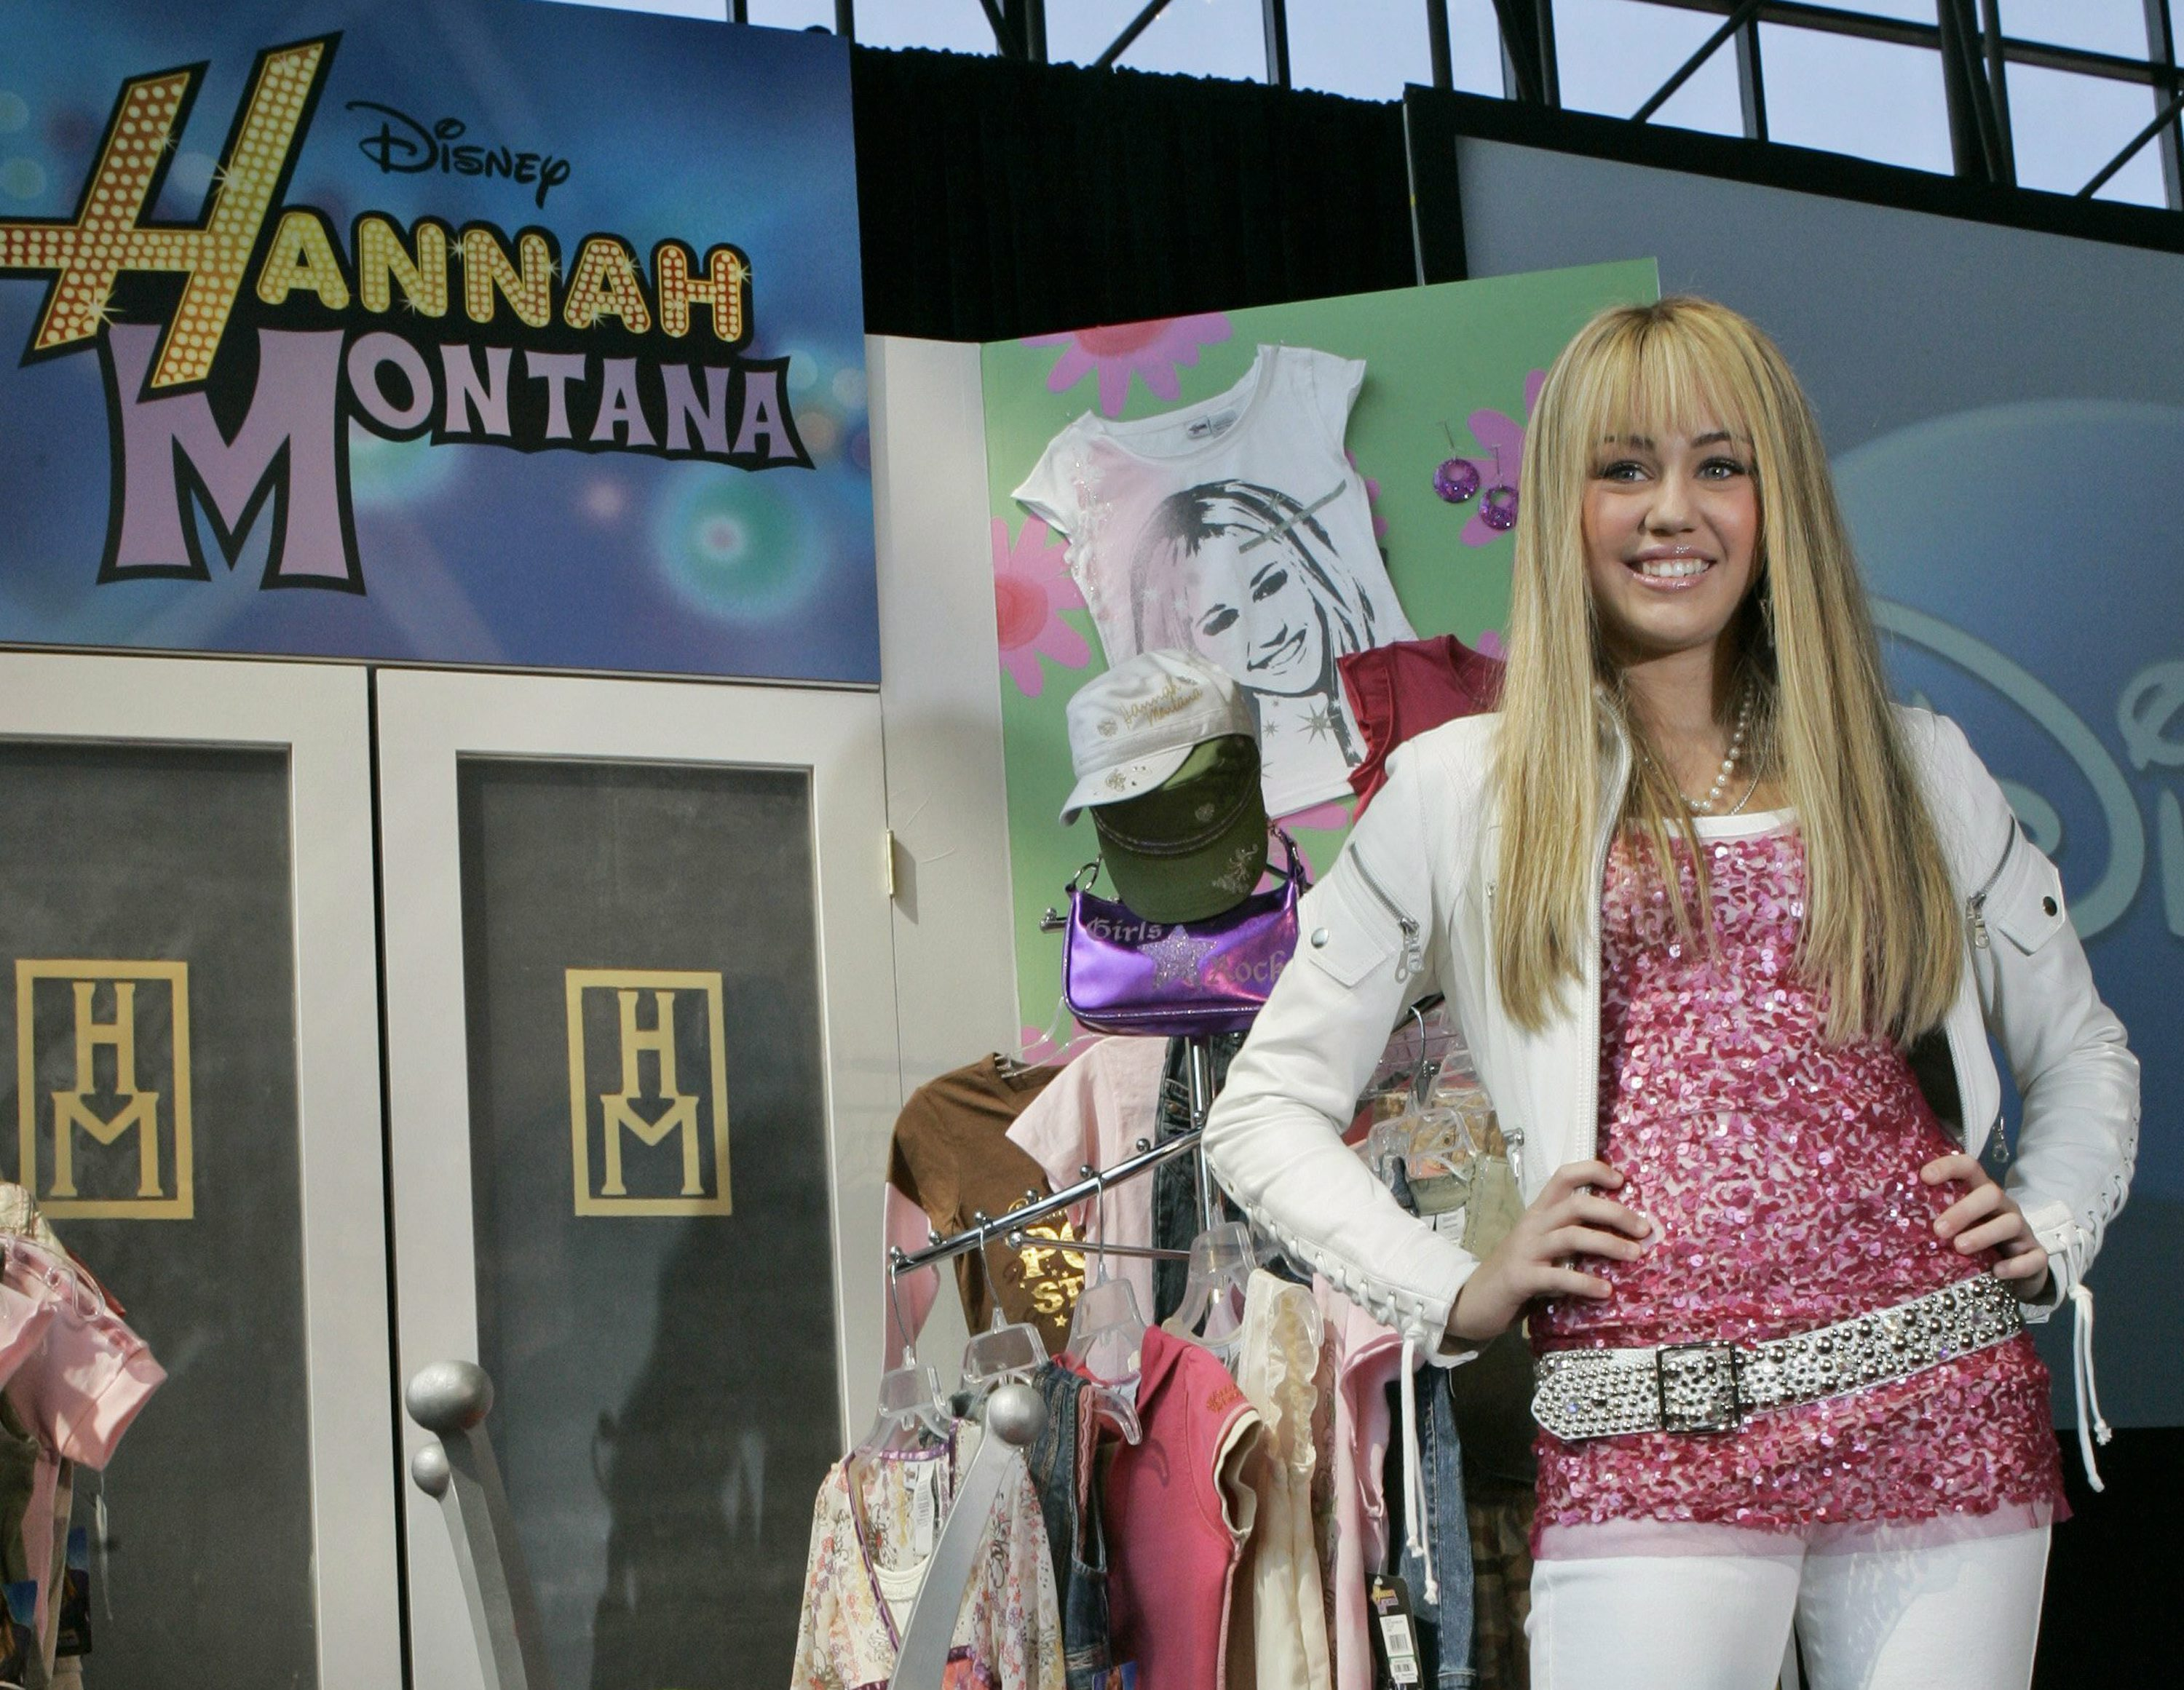 """FILE - In this June 19, 2007 file photo Miley Cyrus, star of The Disney Channel's series """"Hannah Montana"""" makes an appearance at the Licensing International Expo in New York. Costumes, props and tour items from the Disney Channel?Äôs ?ÄúHannah Montana?Äù TV series are going up for auction. The teen sitcom featured Cyrus, who portrayed schoolgirl Miley Stewart by day and international pop star Hannah Montana by night. It helped launched Cyrus?Äô career and the franchise included albums, films and concerts. Julien?Äôs Auctions announced on Thursday, April 11, 2019, all proceeds will benefit the Wilder Minds charity, which aids the world?Äôs at-risk animals."""